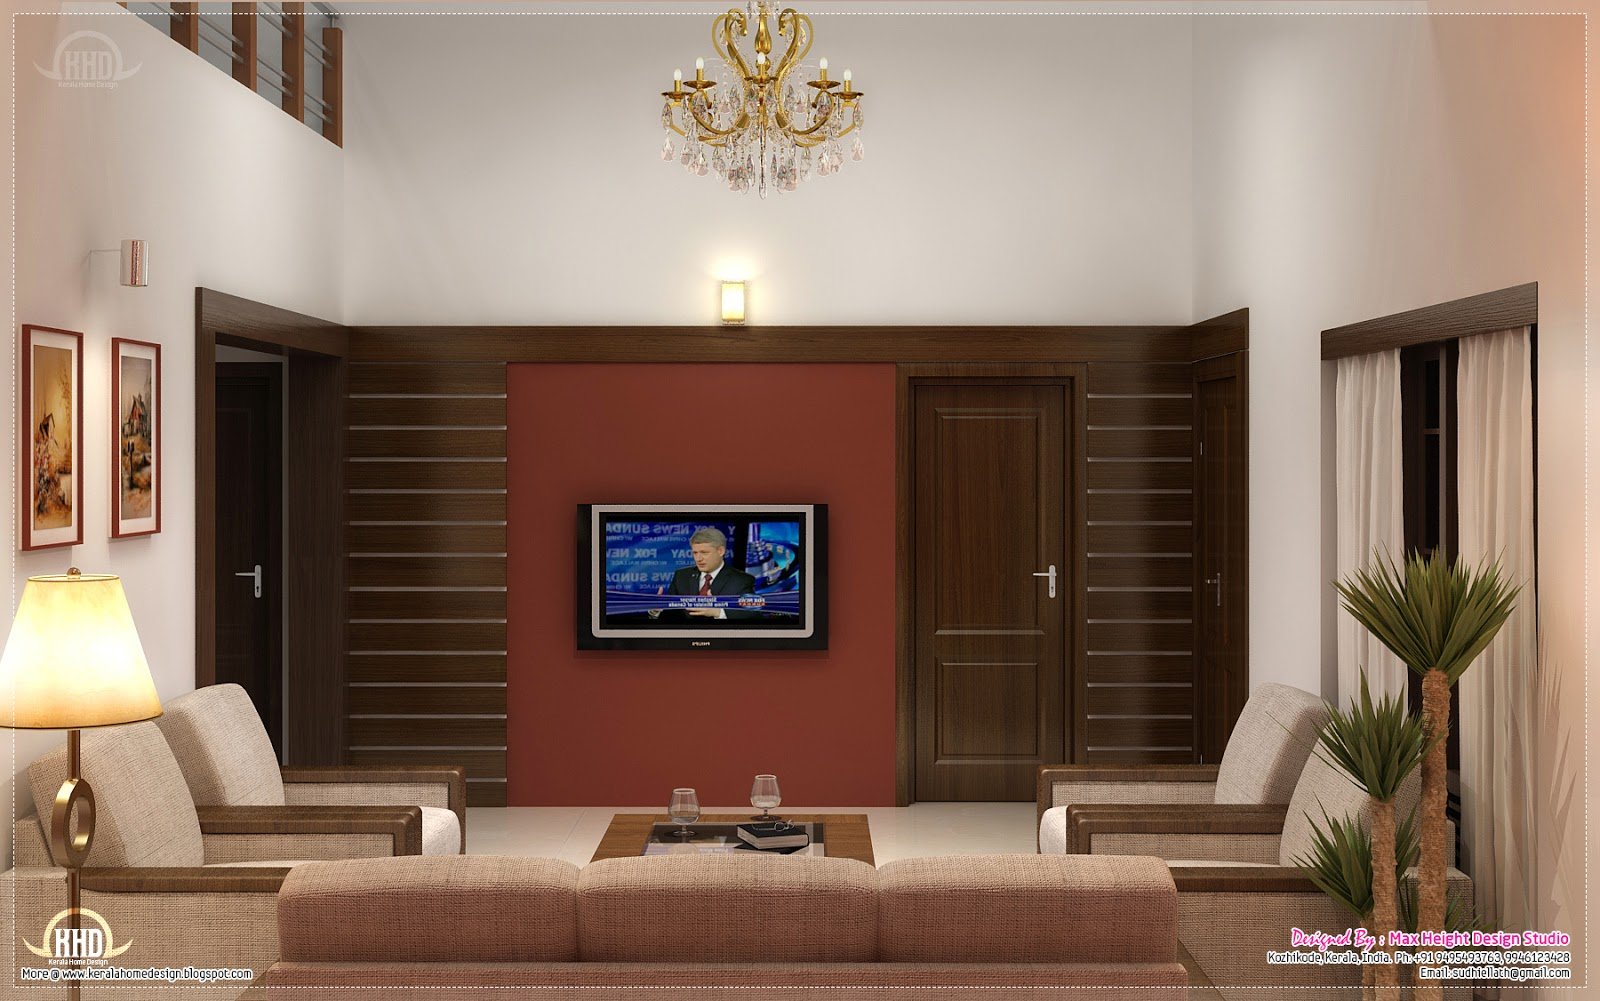 Home interior design ideas kerala home design and floor for Interior design house living room